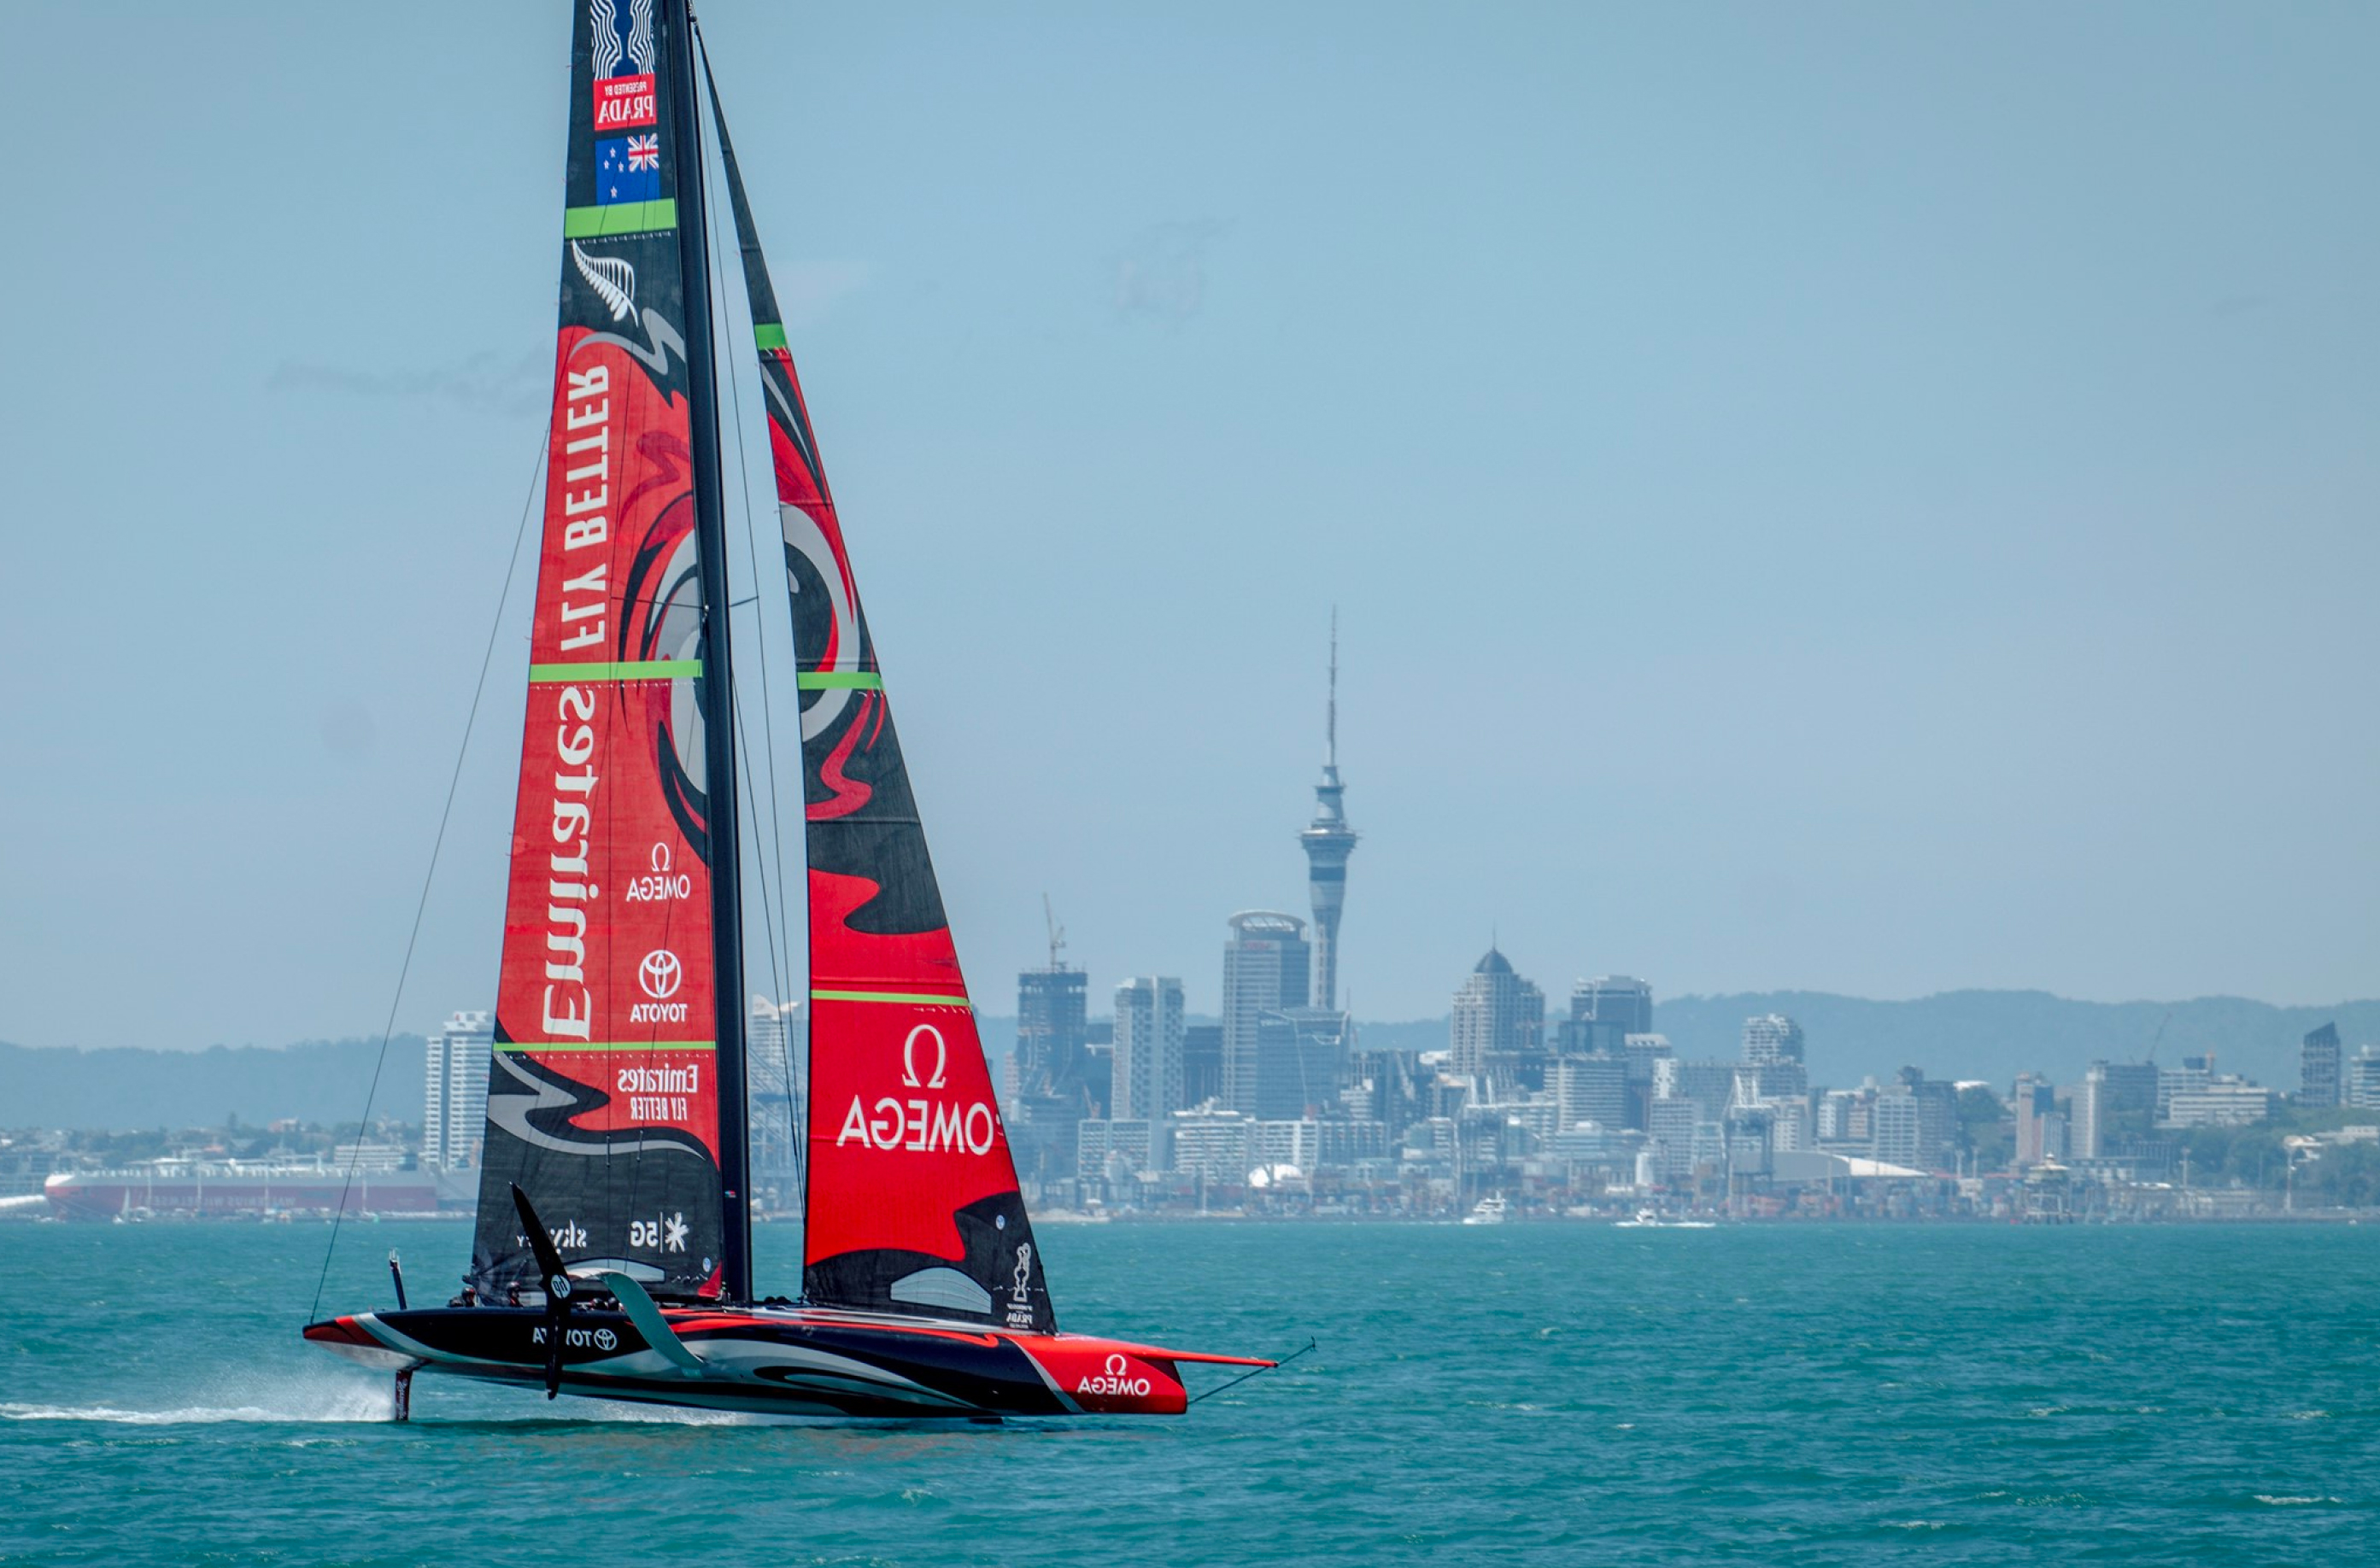 The America's Cup is here